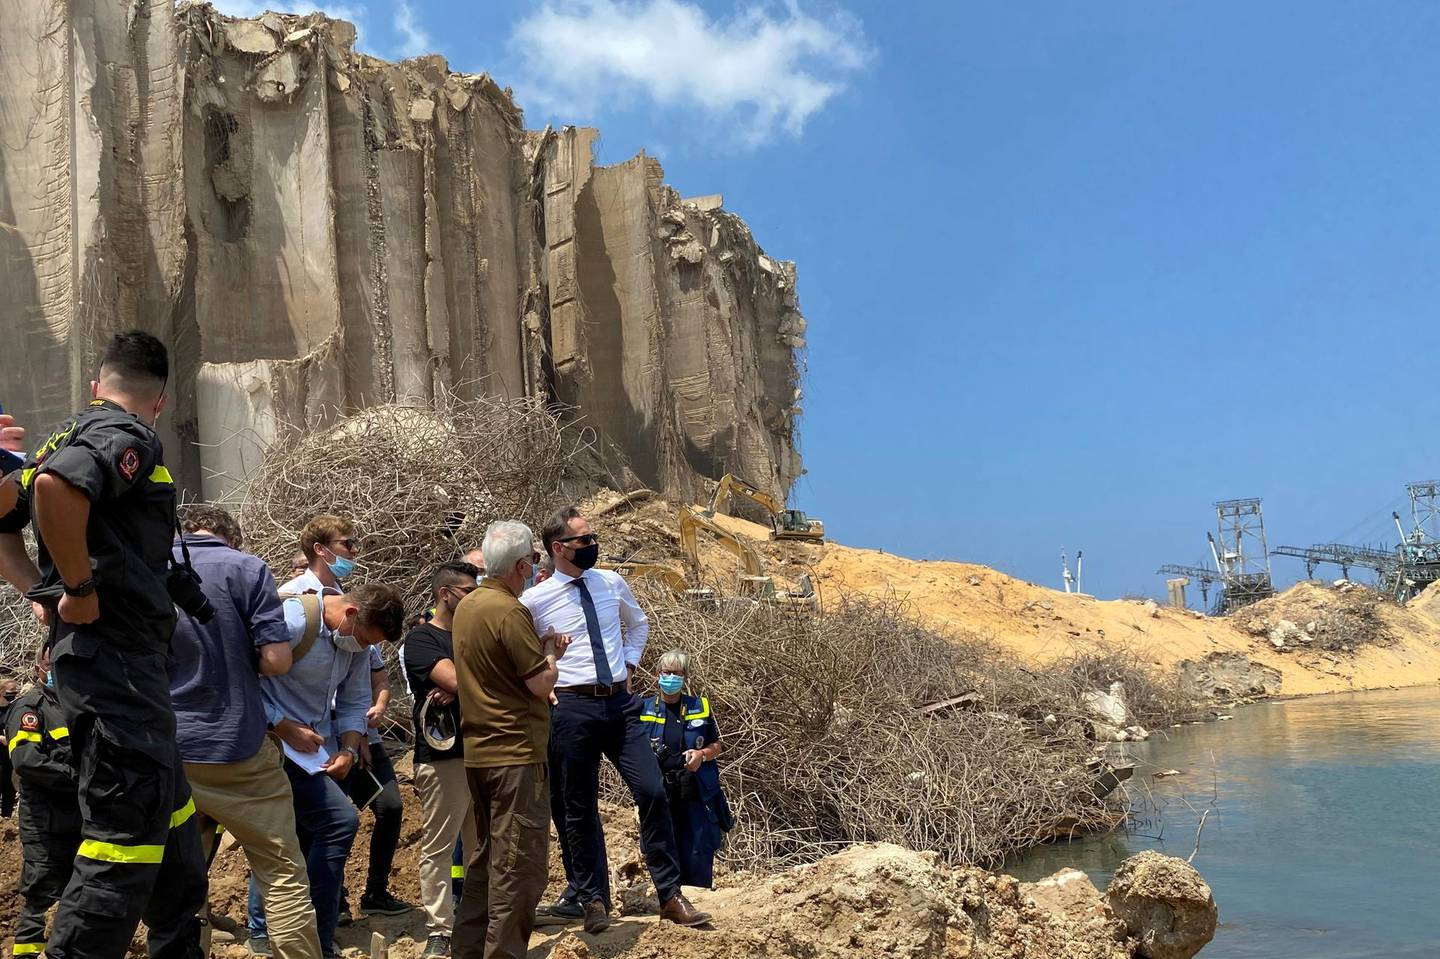 German Foreign Minister Heiko Maas views the damage at the site of a massive explosion at Beirut port, Lebanon August 12, 2020. REUTERS/Andreas Rinke